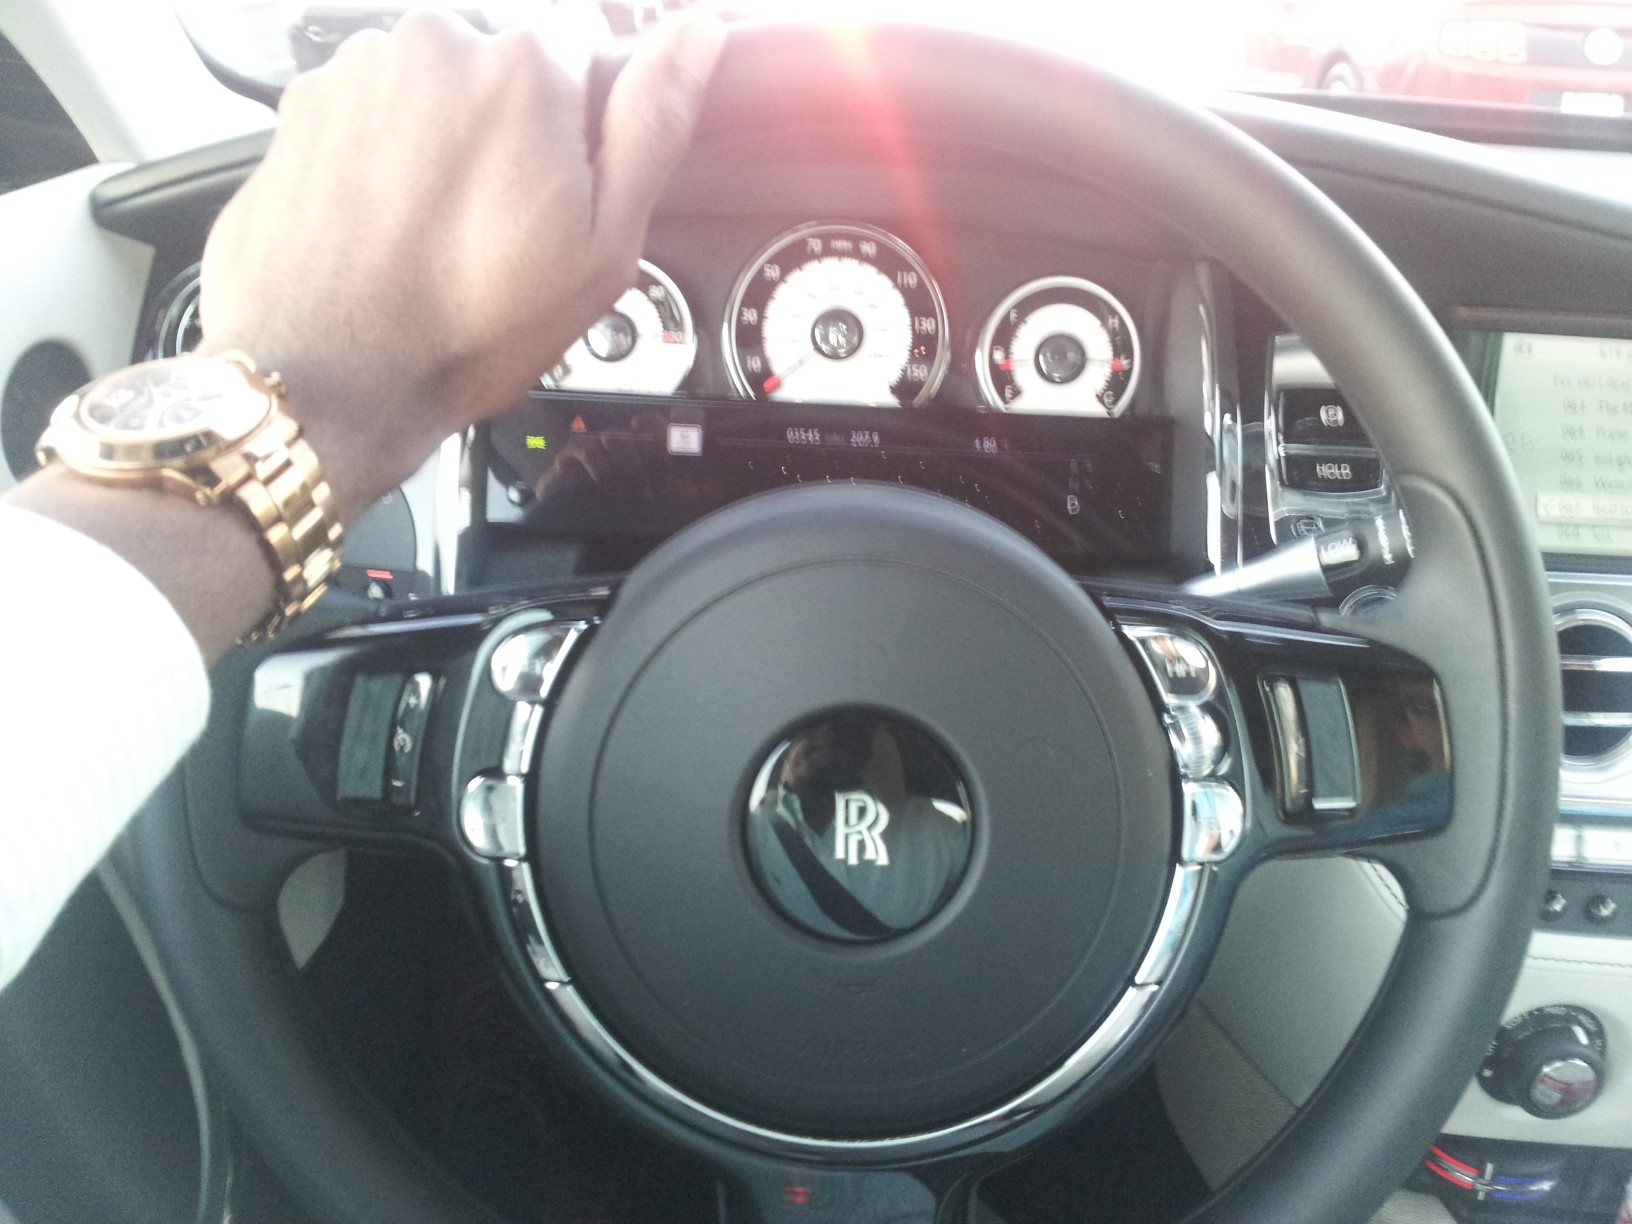 20131103 171934 Exclusive: 2013 Rolls Royce Wraith   All You Need to Know